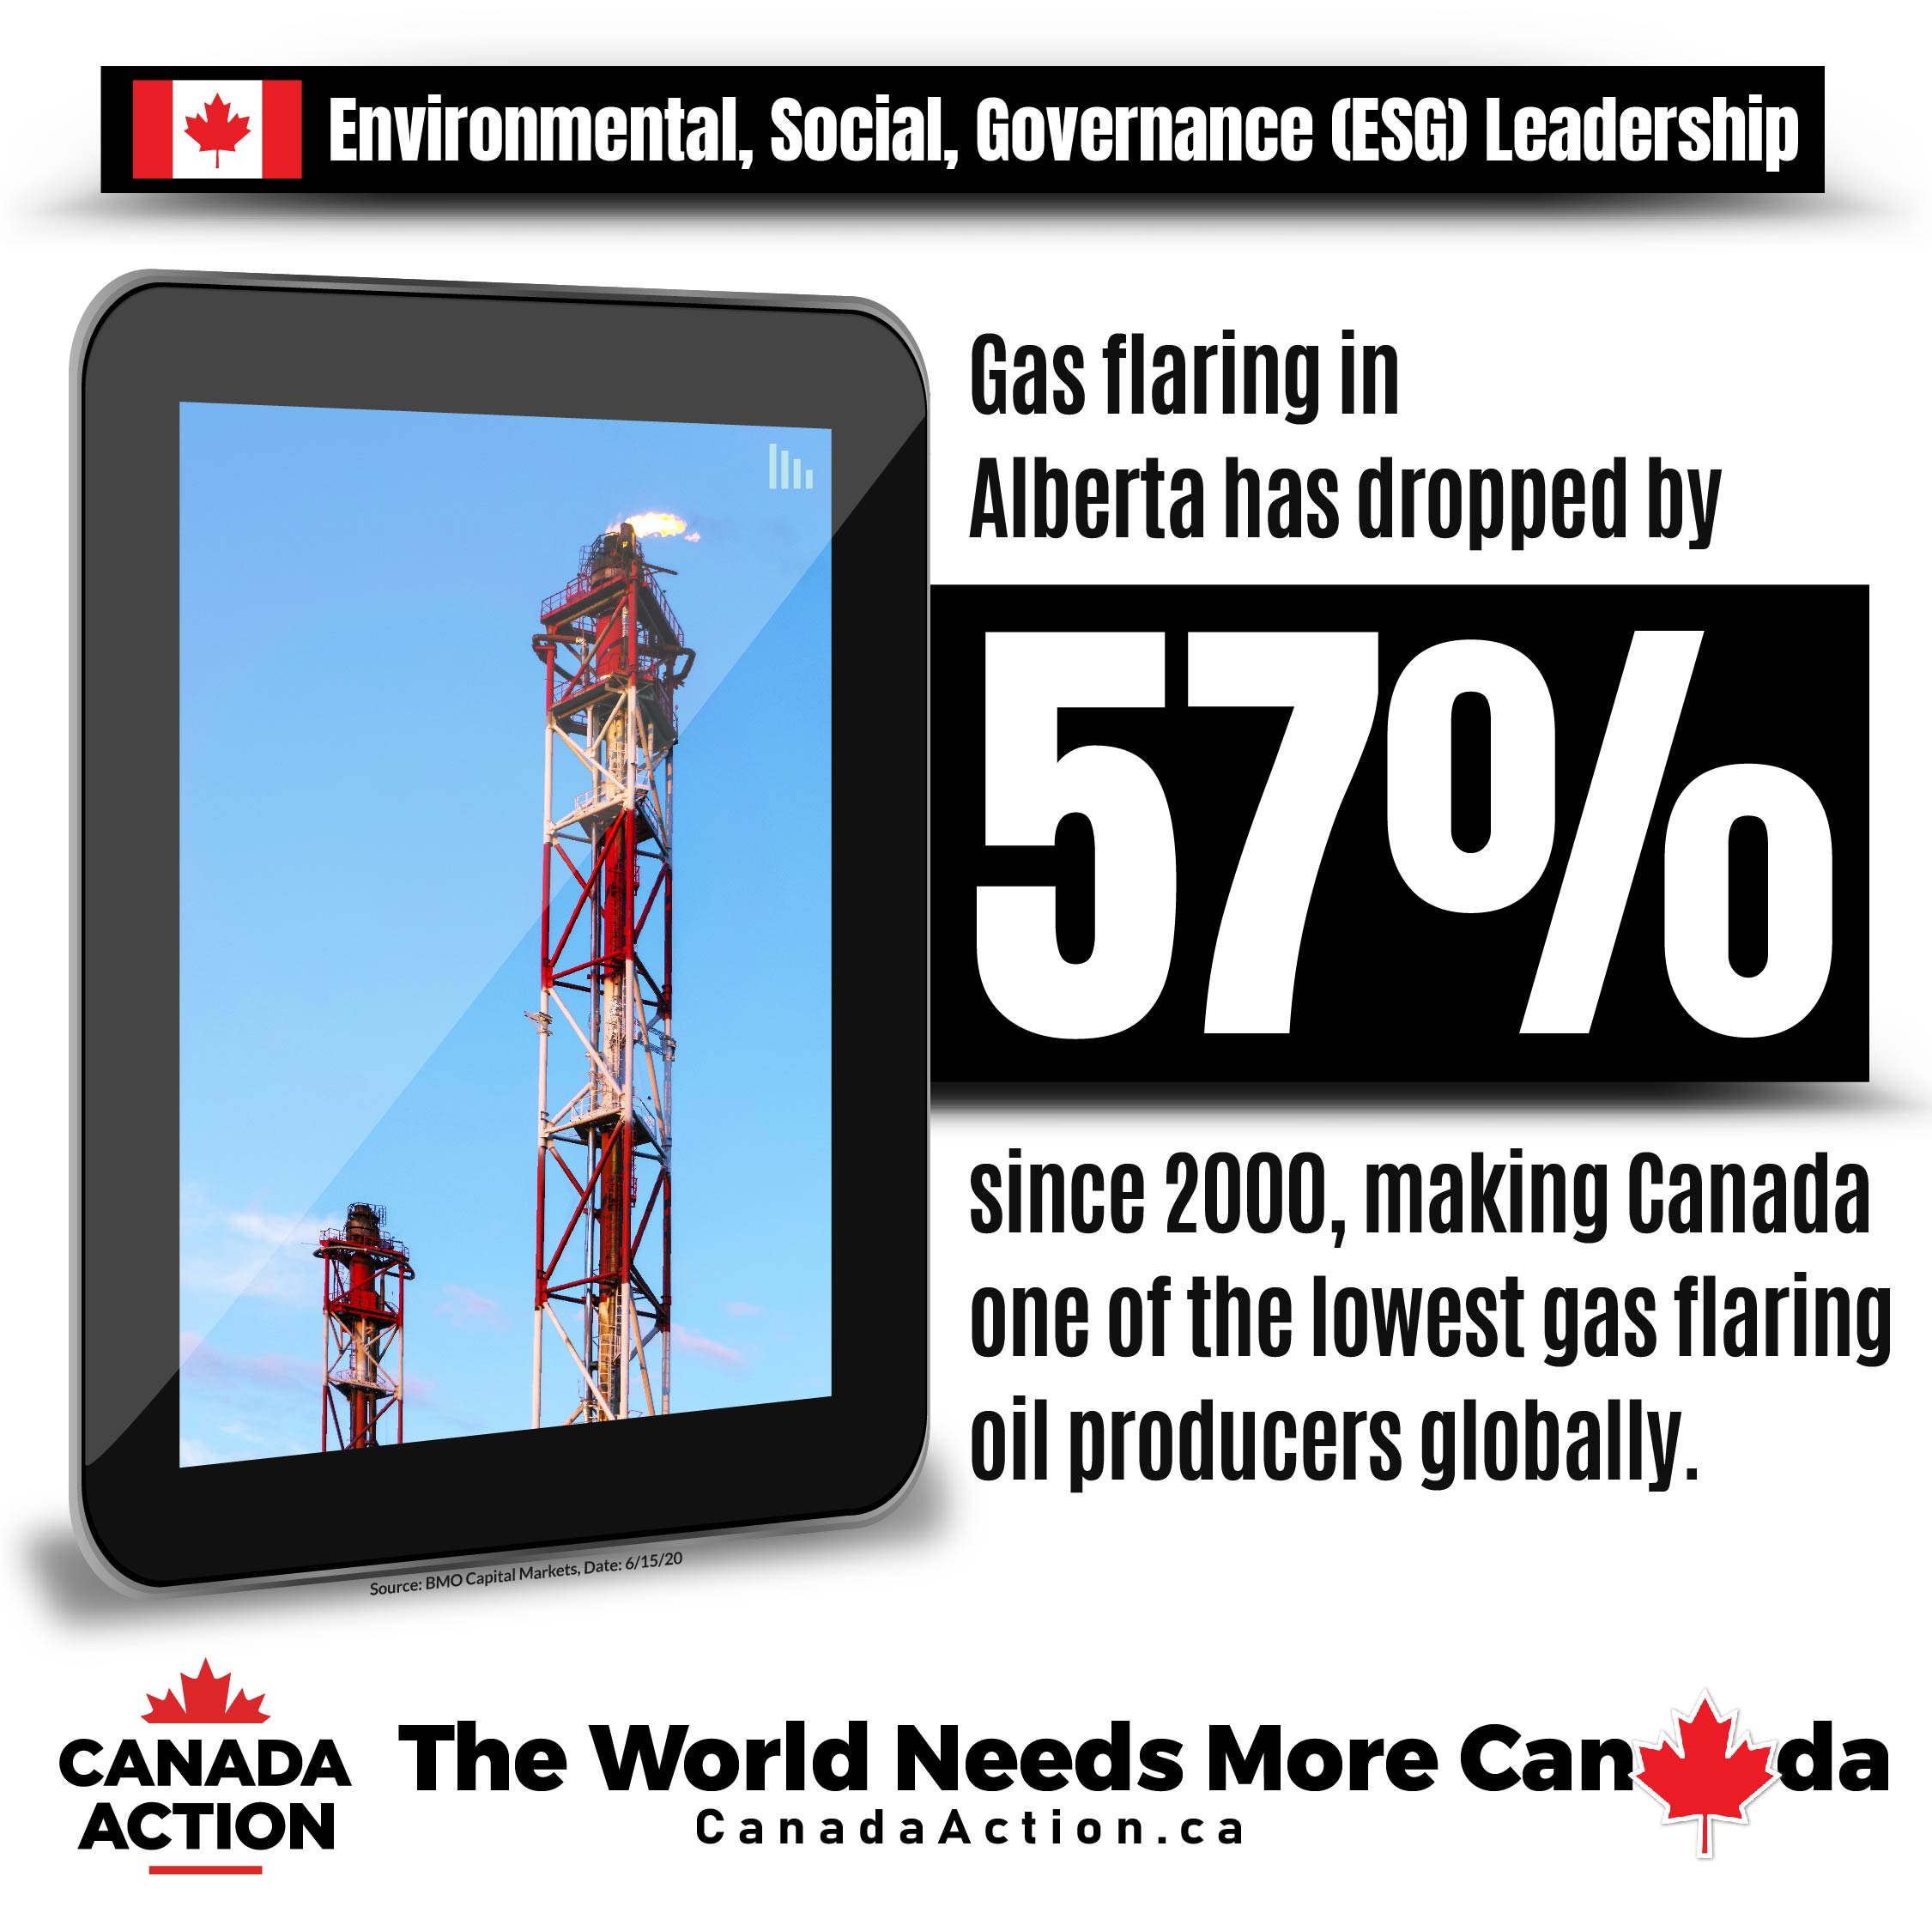 Alberta has reduced gas flaring by 57% since 2000, making Canada a world leader